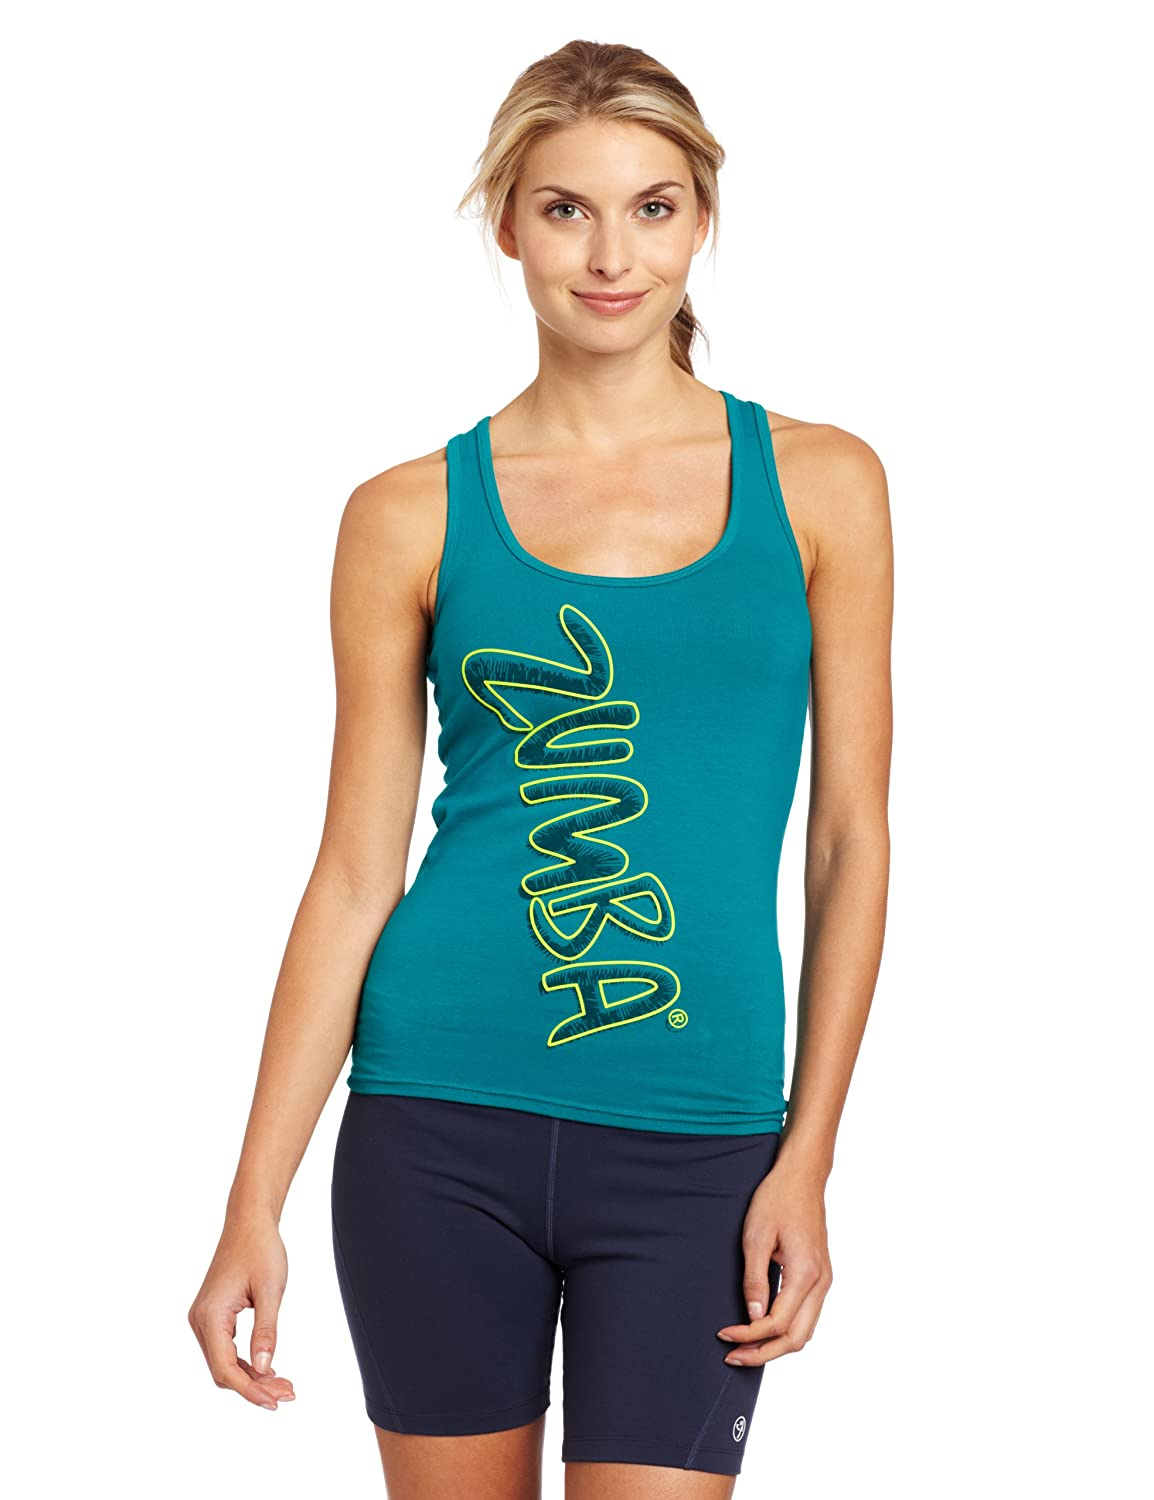 Zumba Women's Fitness LLC Pop Racerback Tank Top